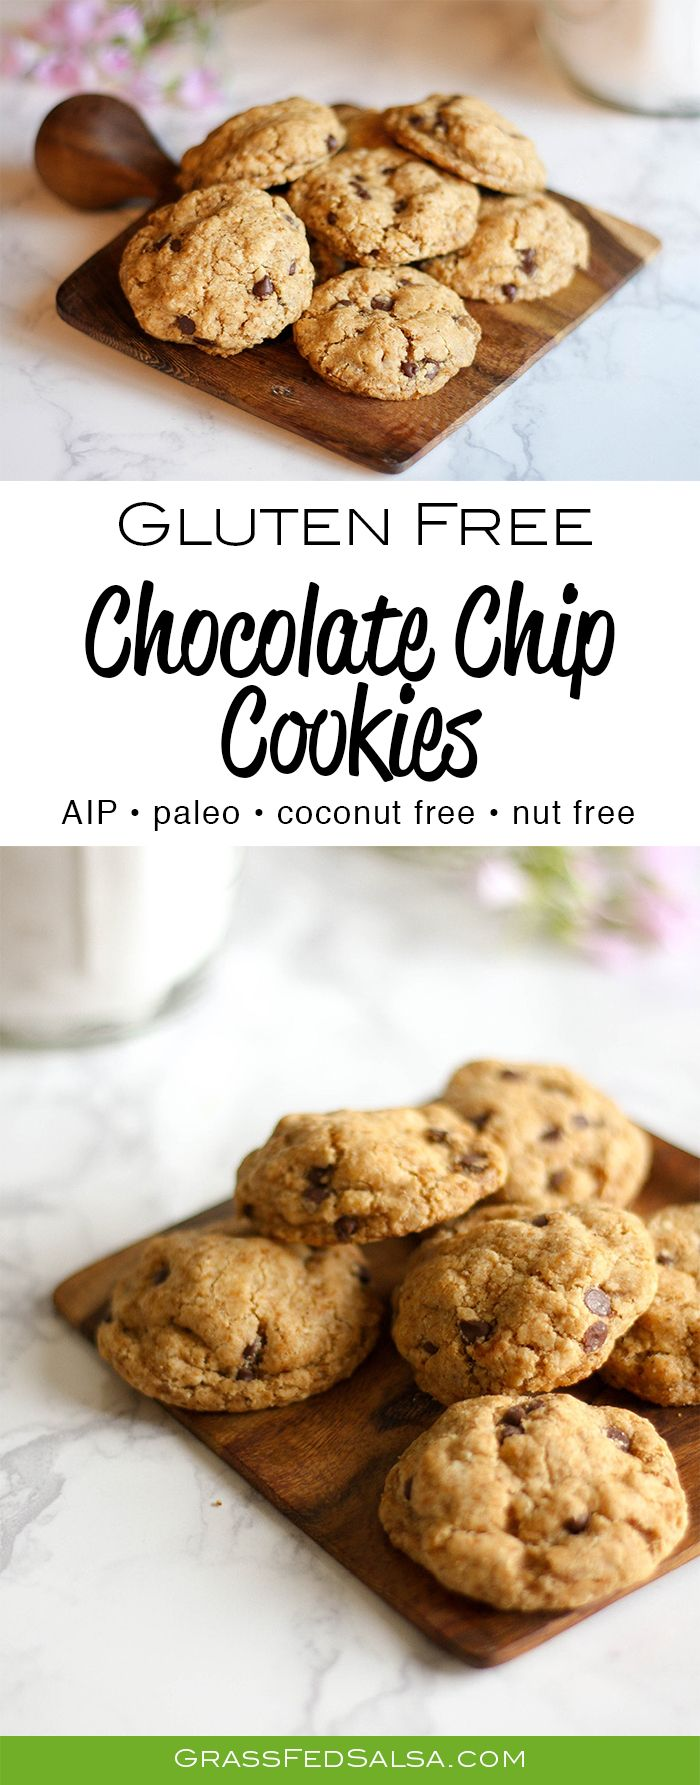 This Paleo friendly recipe makes the best gluten free Chocolate Chip Cookies. You'll never guess they're allergen free: no nuts, dairy, eggs, grains, ...